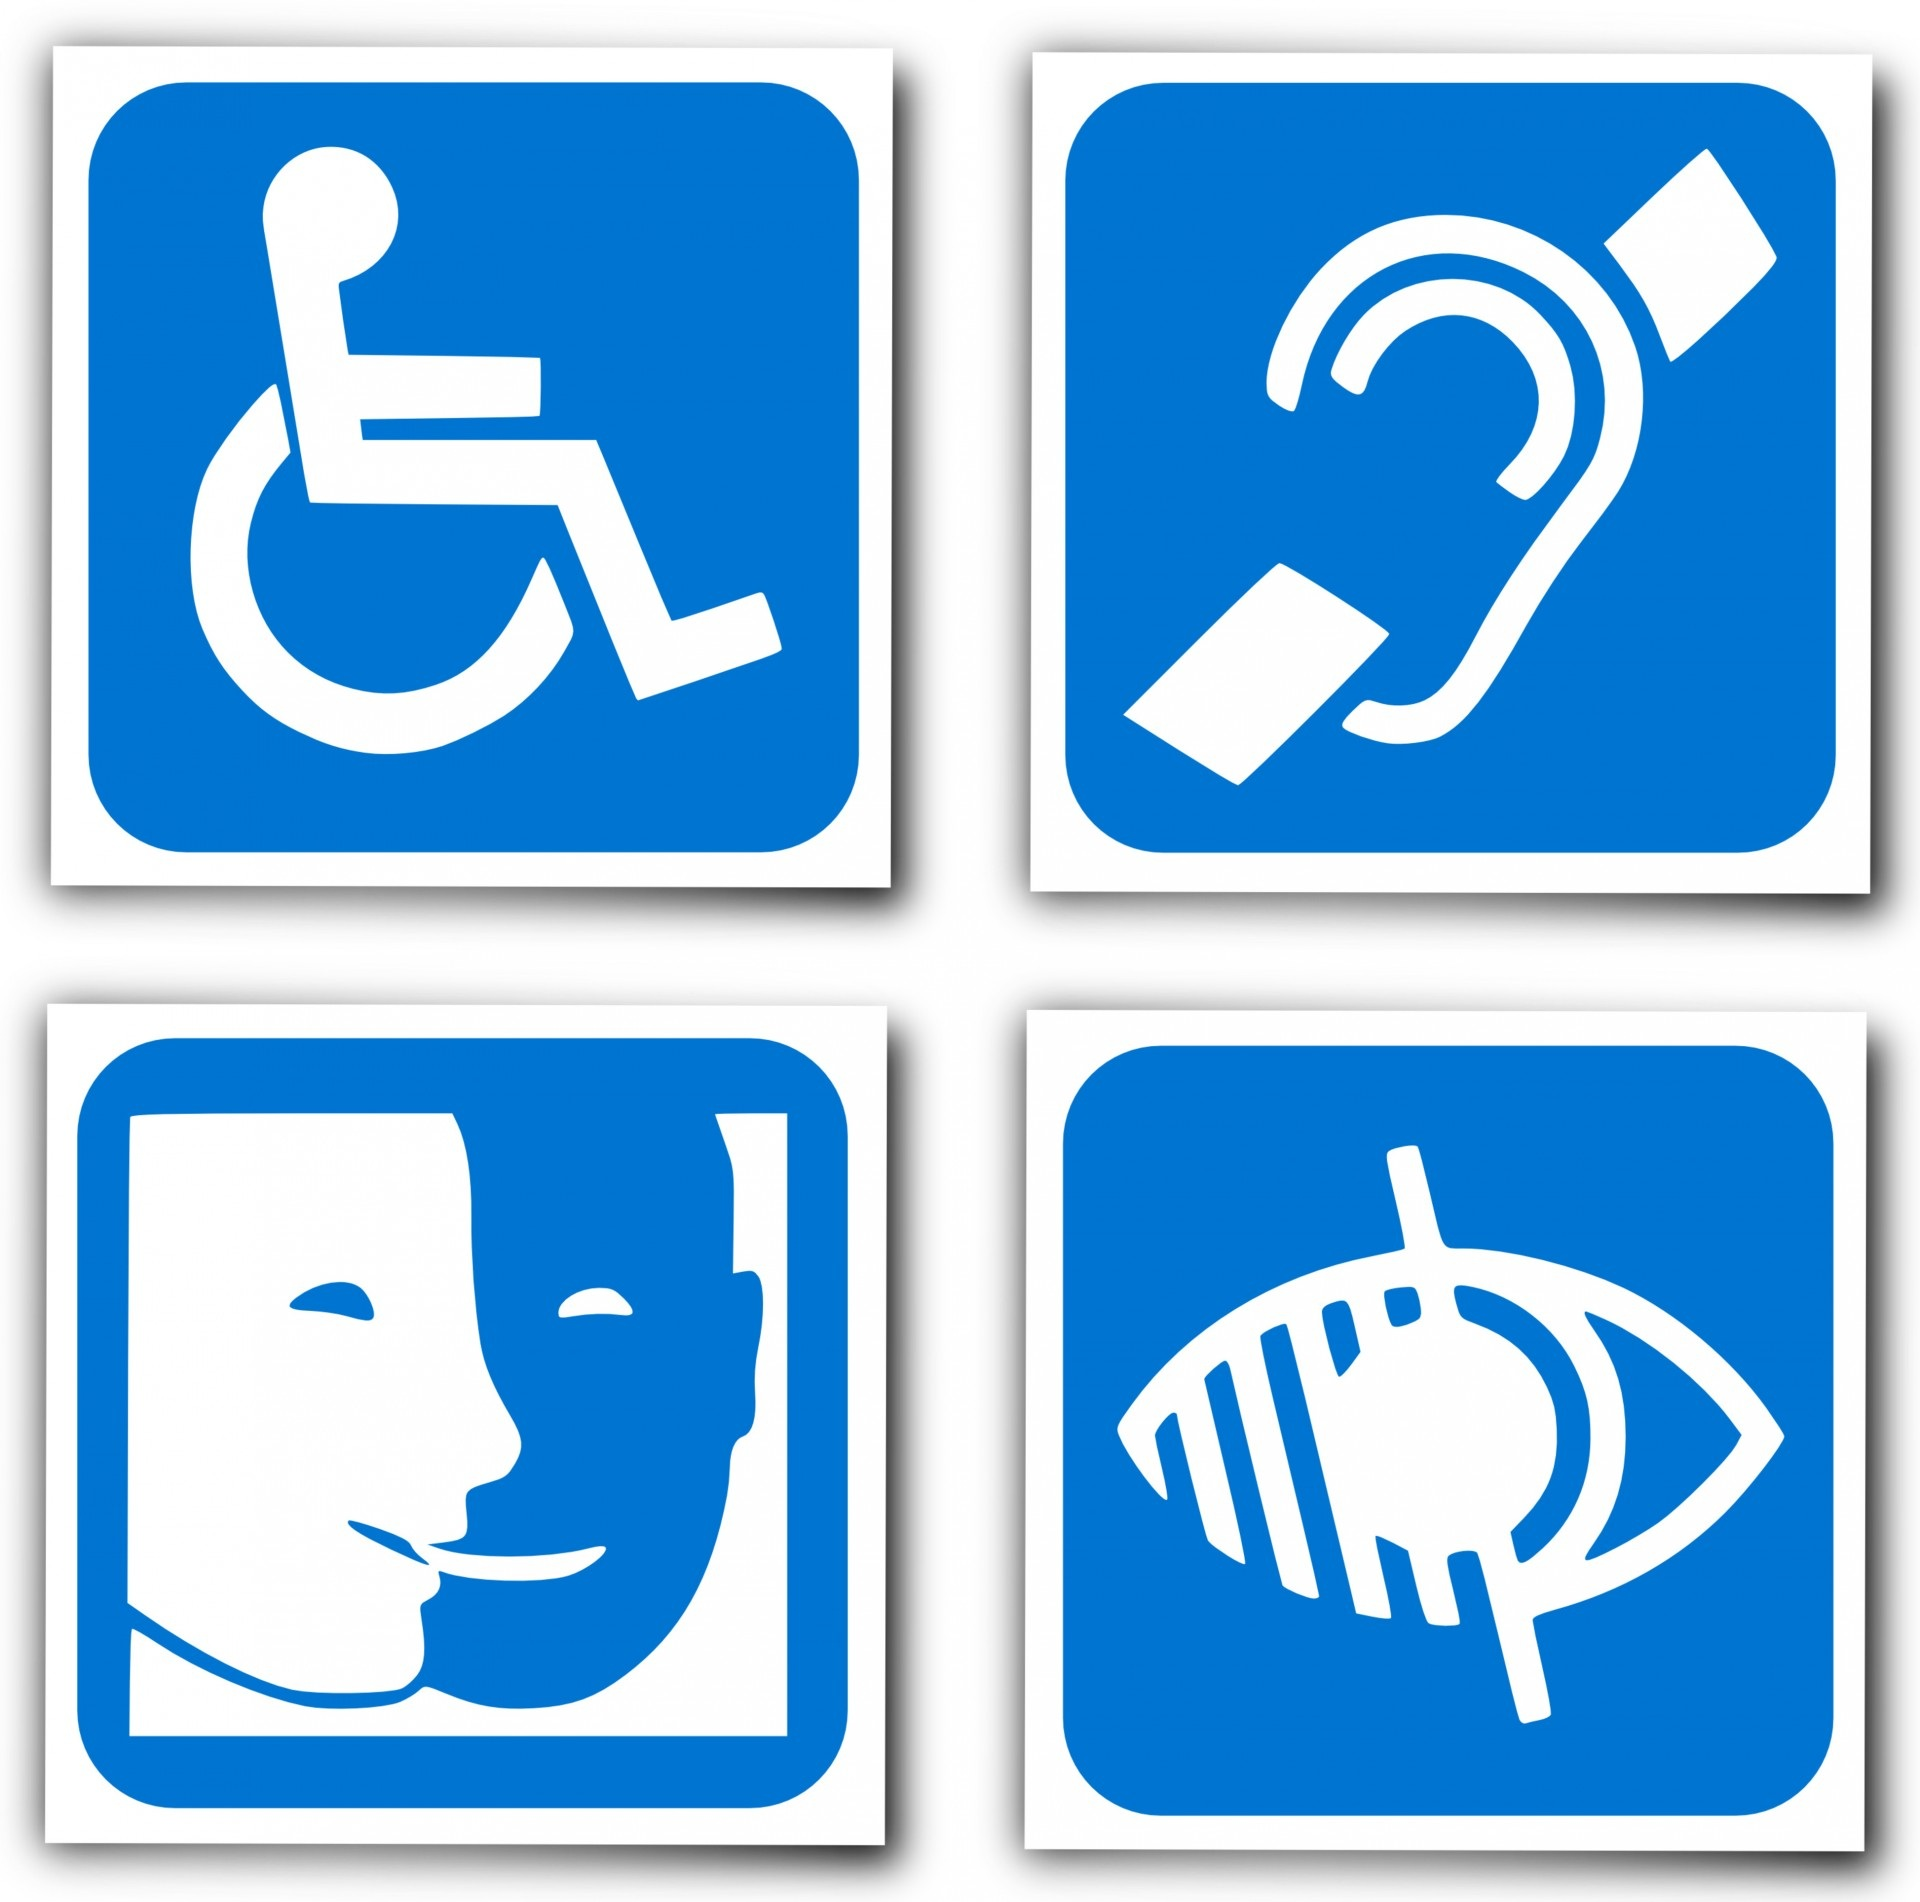 Handicap Pictogramme